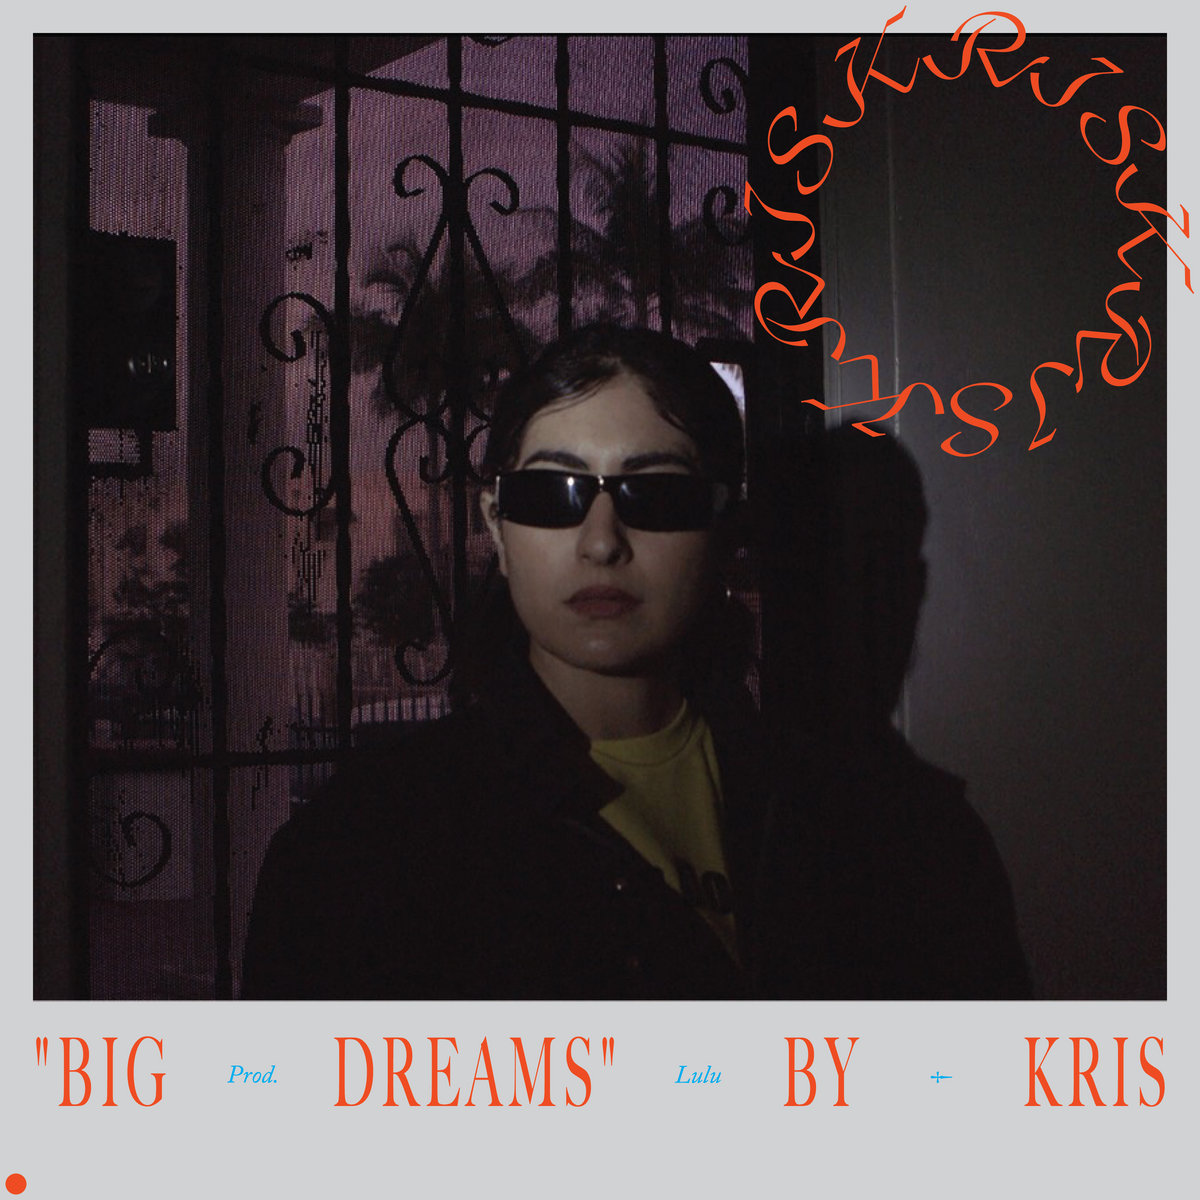 kris_big_dreams_01